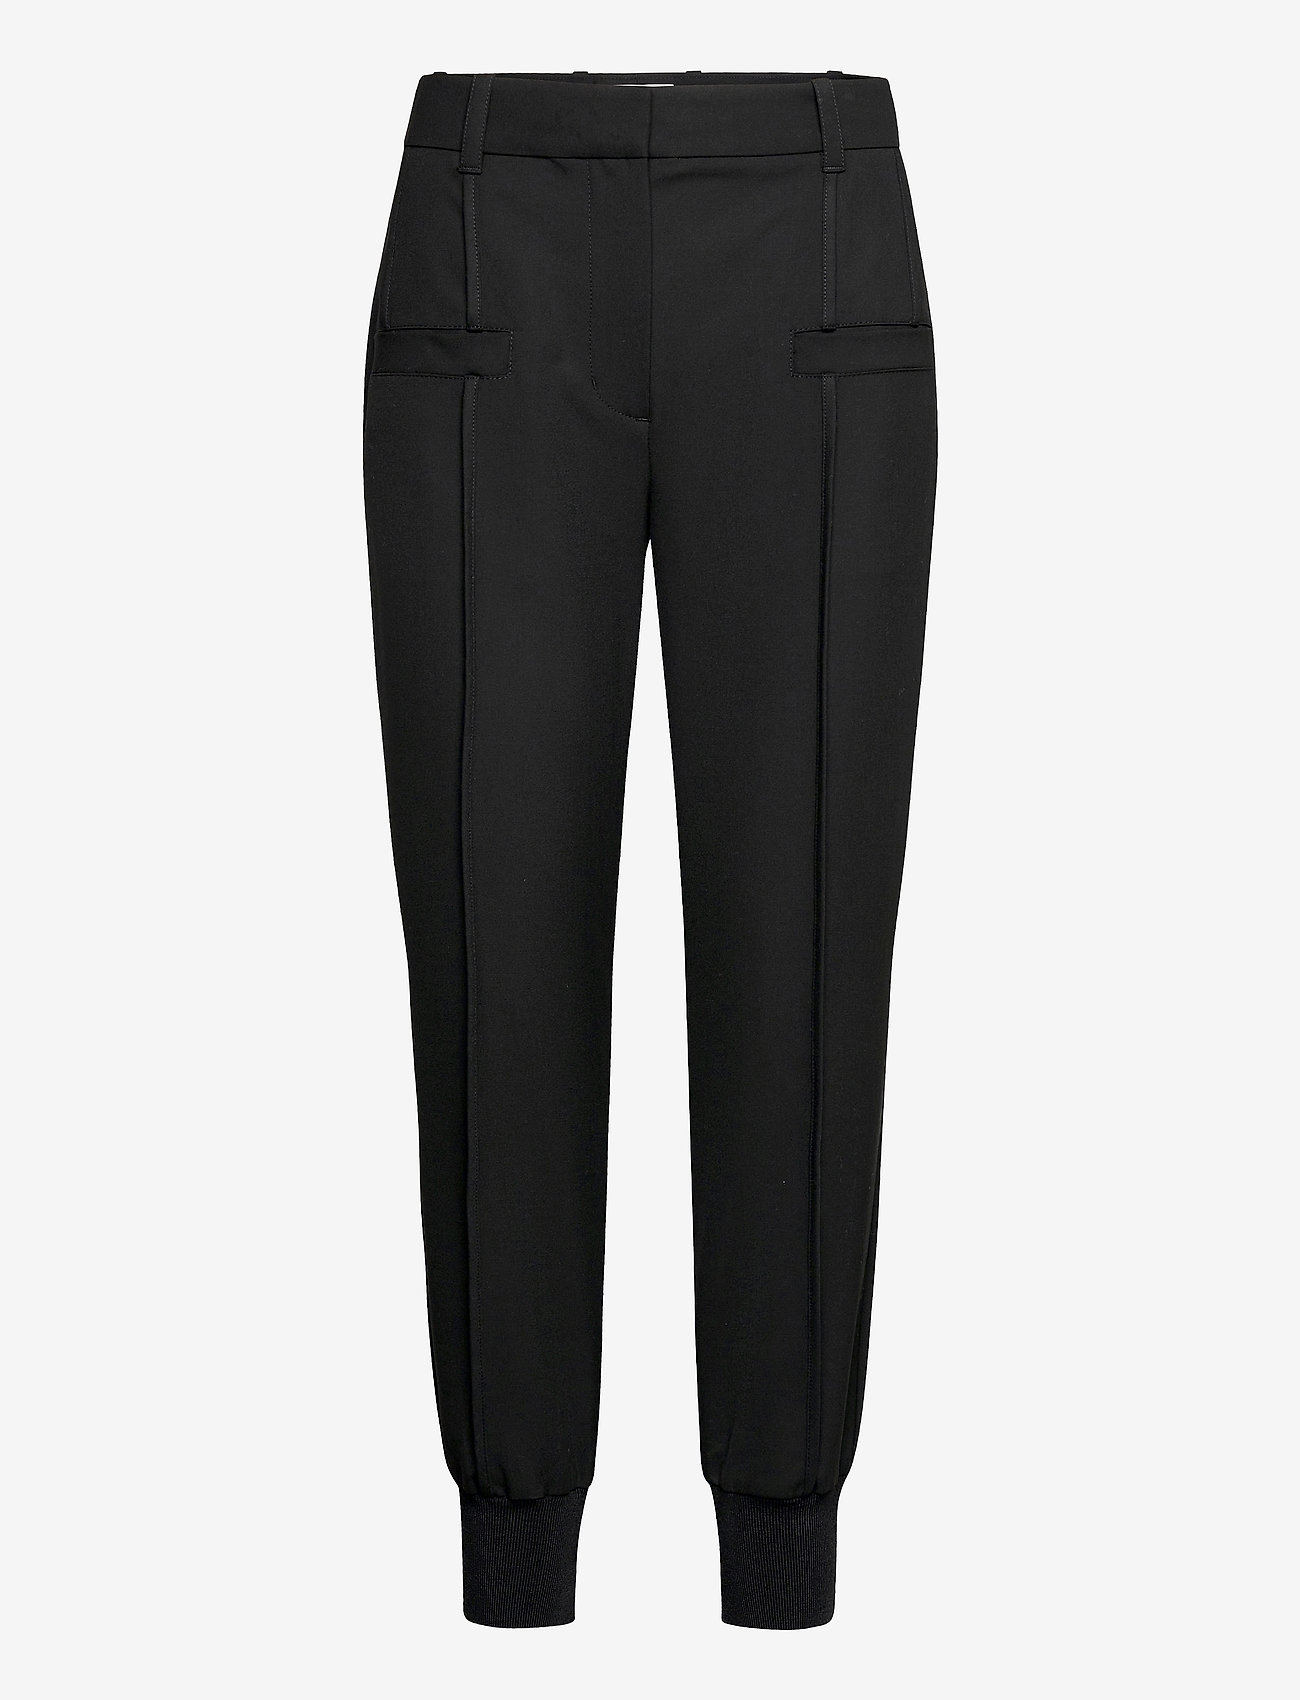 3.1 Phillip Lim - JOGGER W FRONT POCKET DETAIL - tøj - black - 0